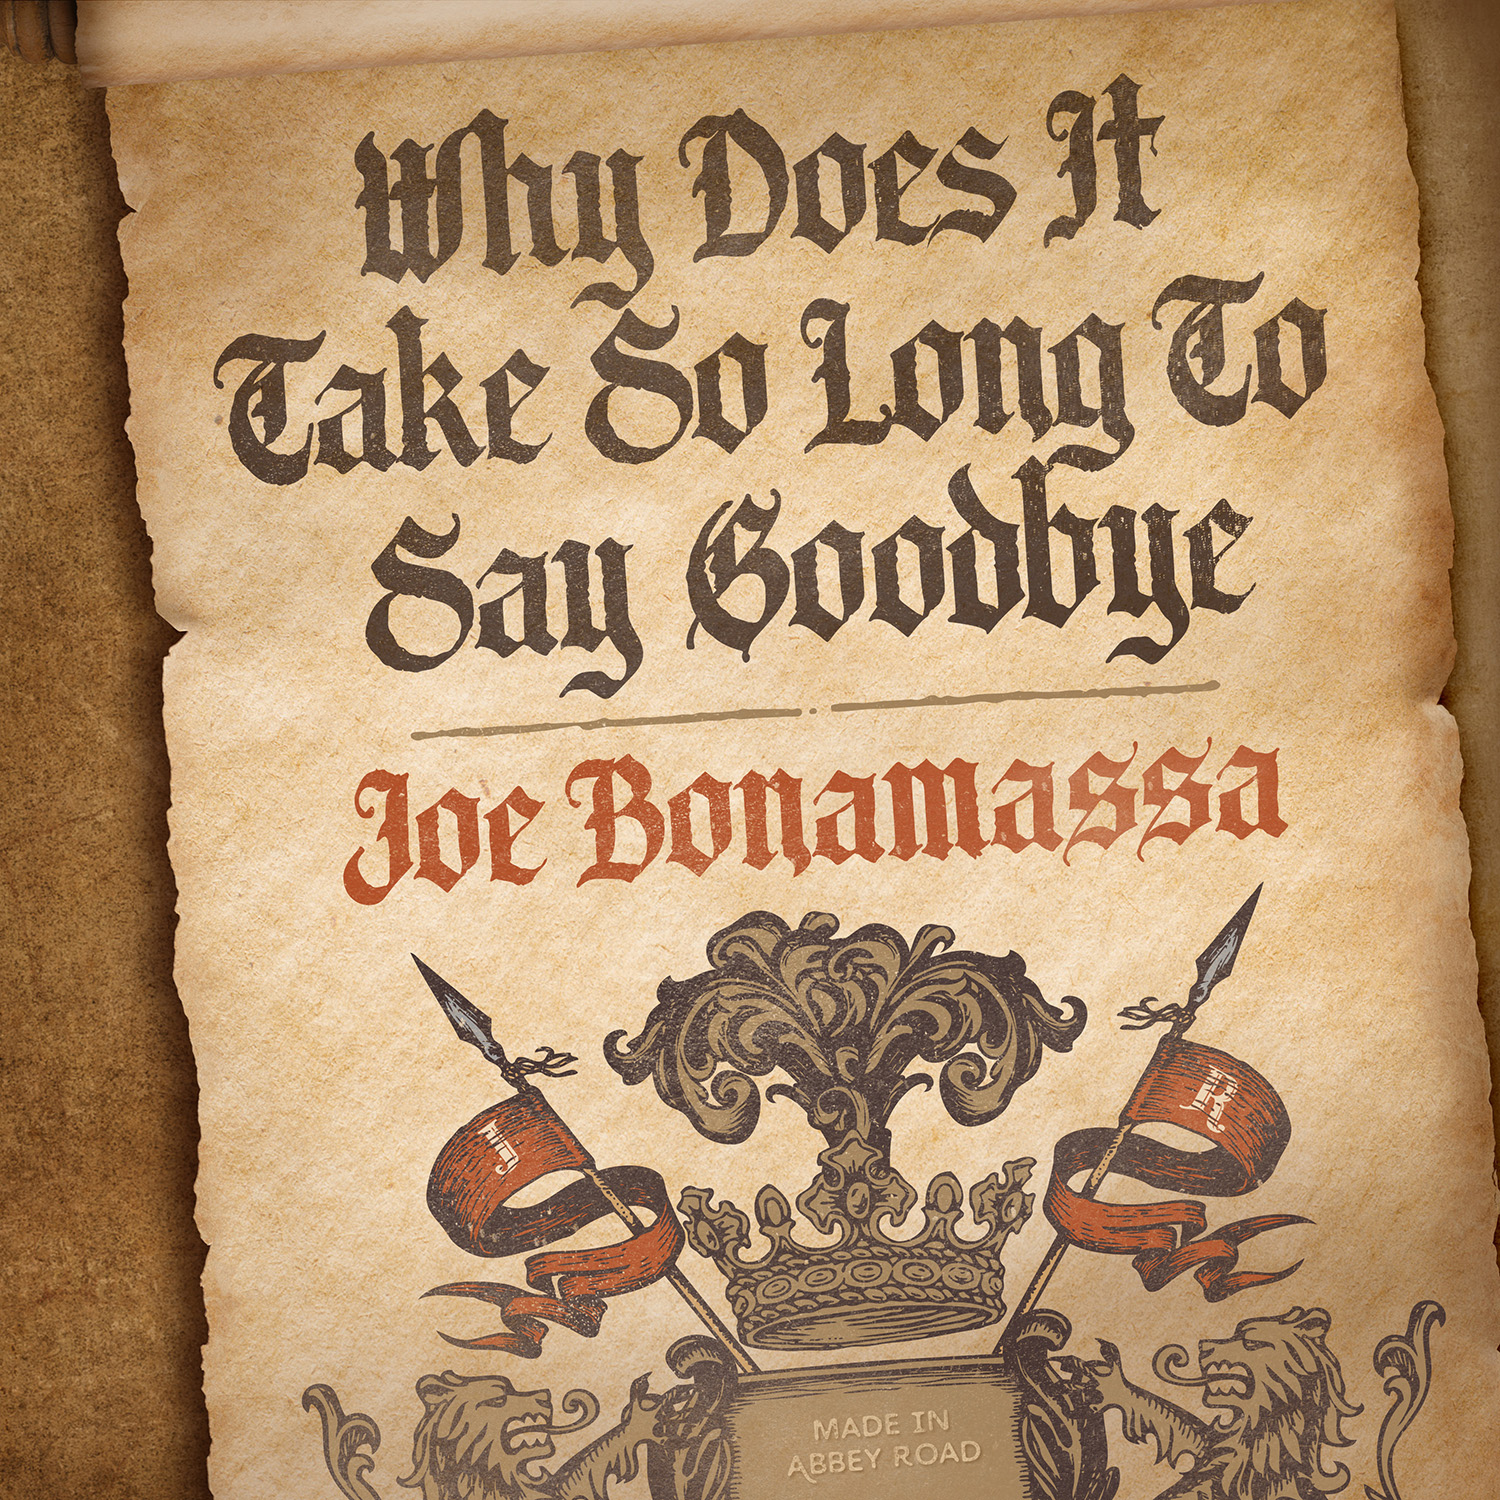 "Joe Bonamassa shares new track from Abbey Road recordings ""Why Does It Take So Long To Say Goodbye"""